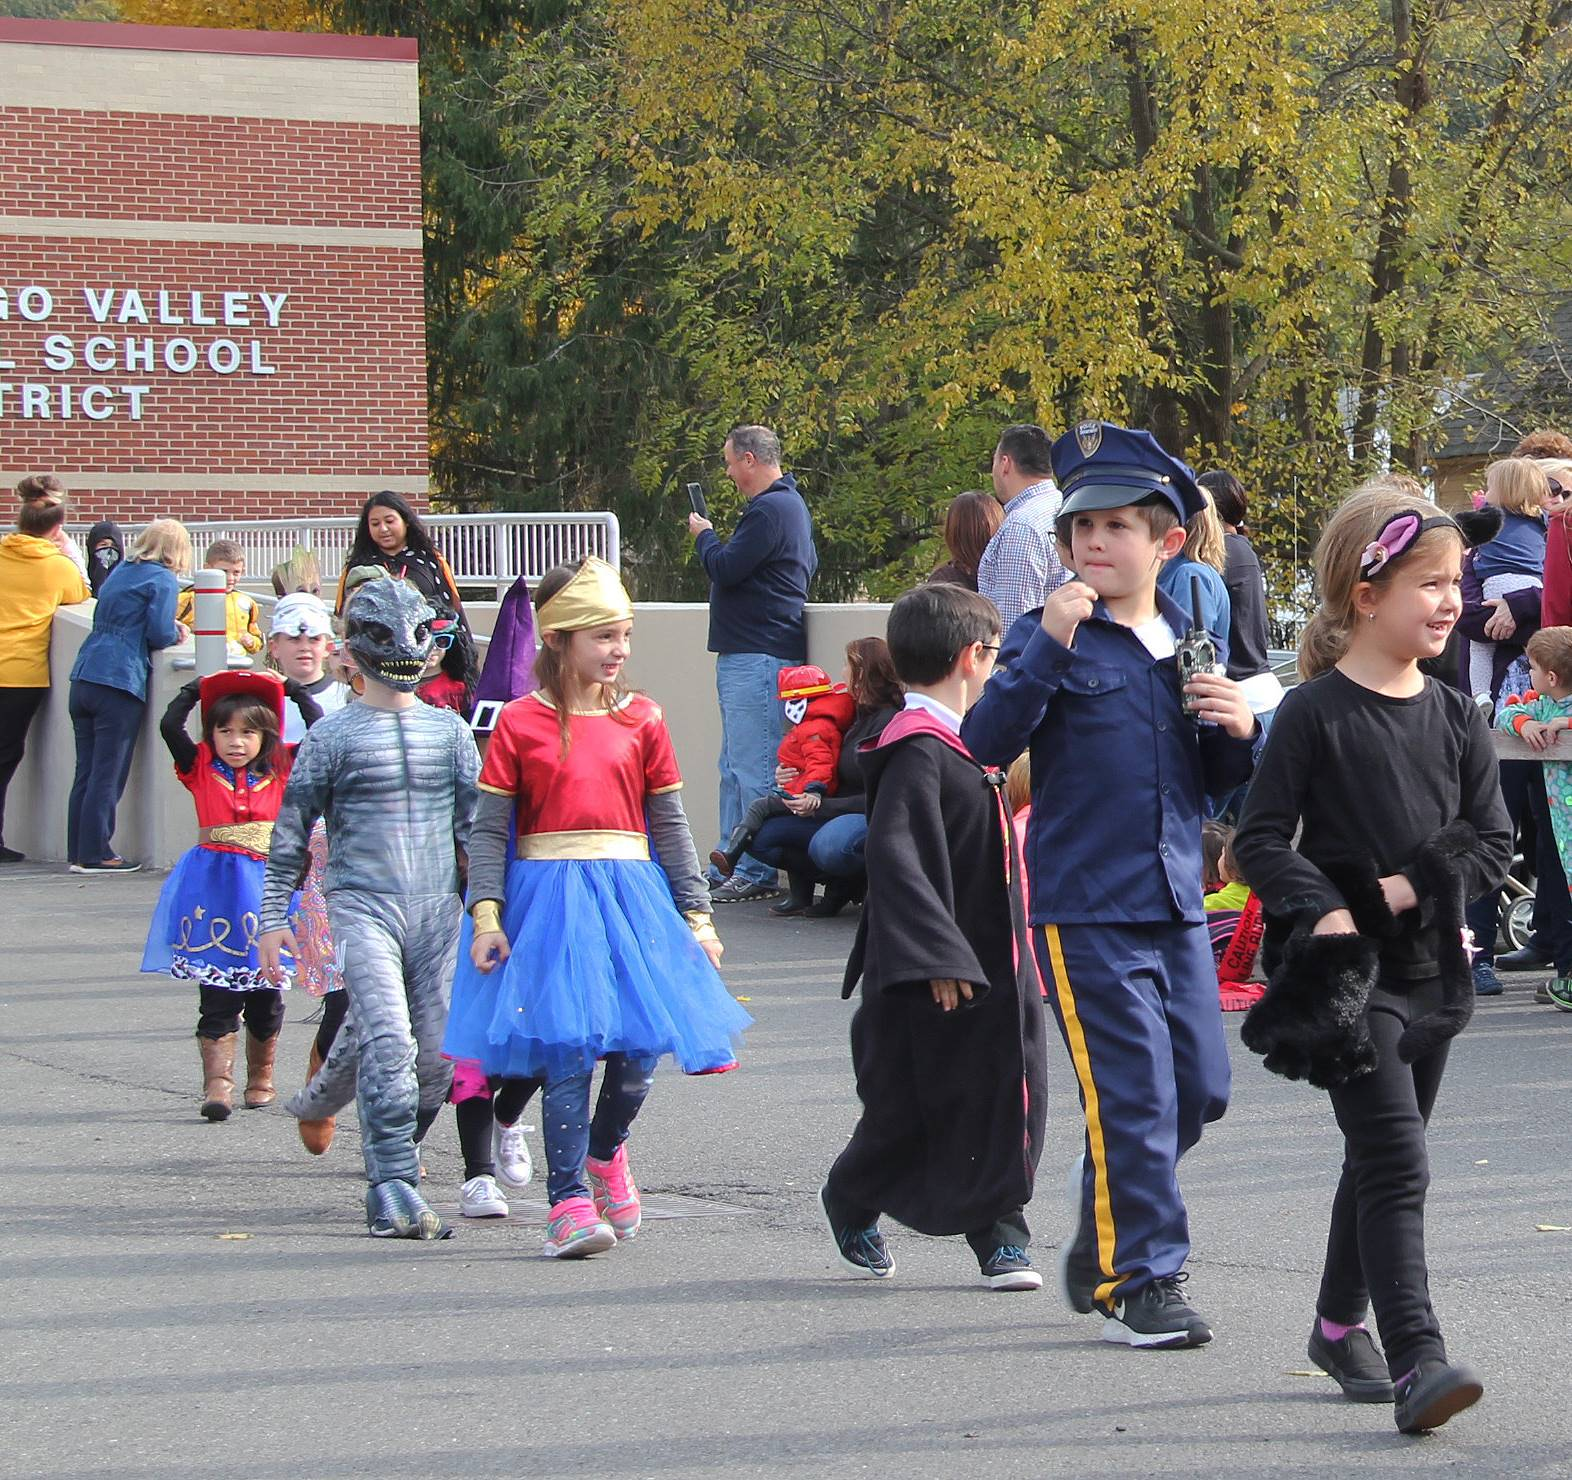 group of students parading in halloween costumes